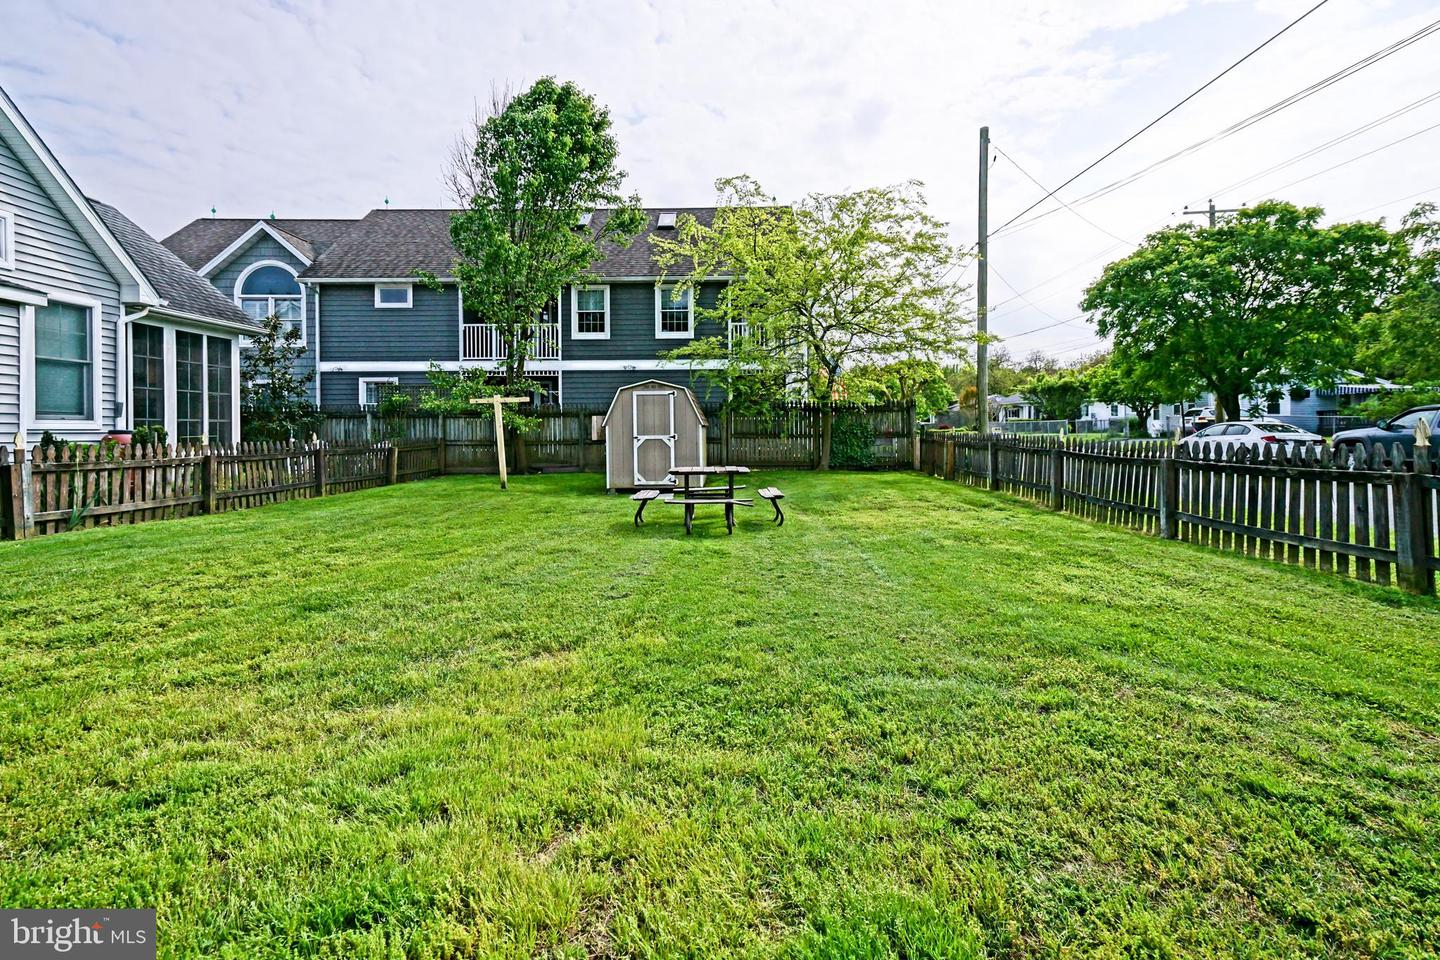 DESU140026-301704467155-2019-08-31-14-10-49 428 W 4th St | Lewes, DE Real Estate For Sale | MLS# Desu140026  - Lee Ann Group